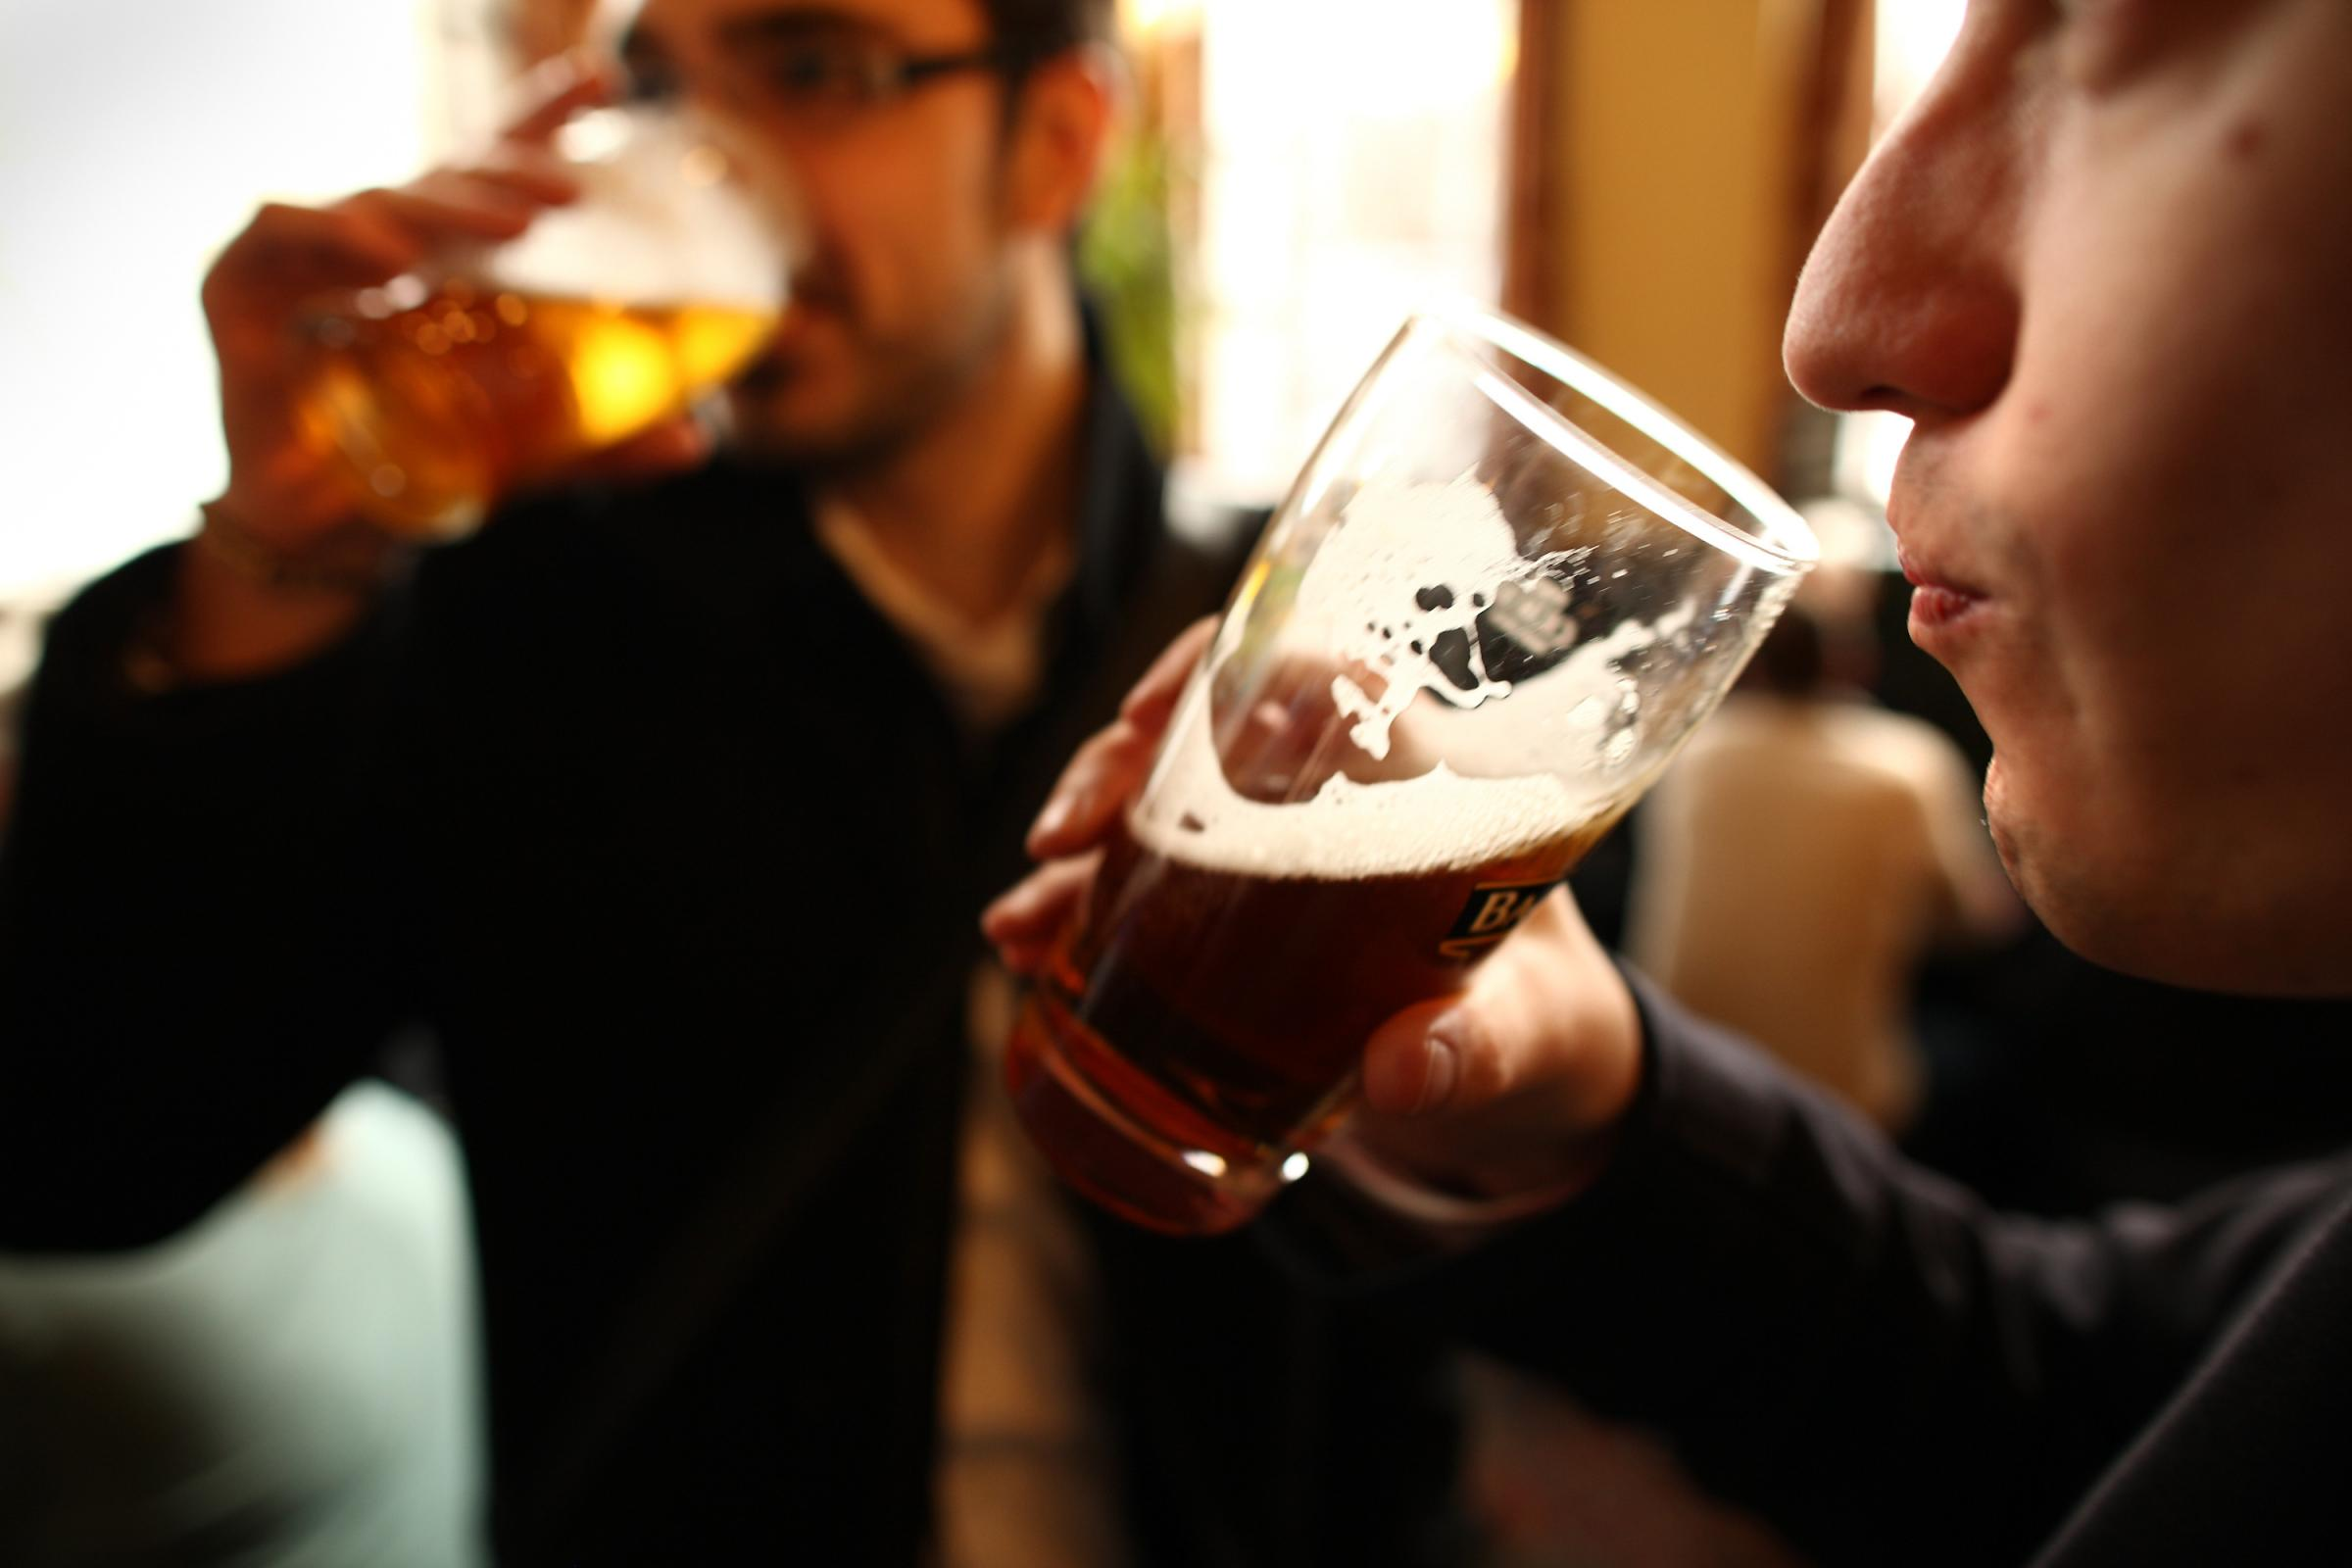 Drinkers might be able to enjoy a pint in a pub without a substantial meal